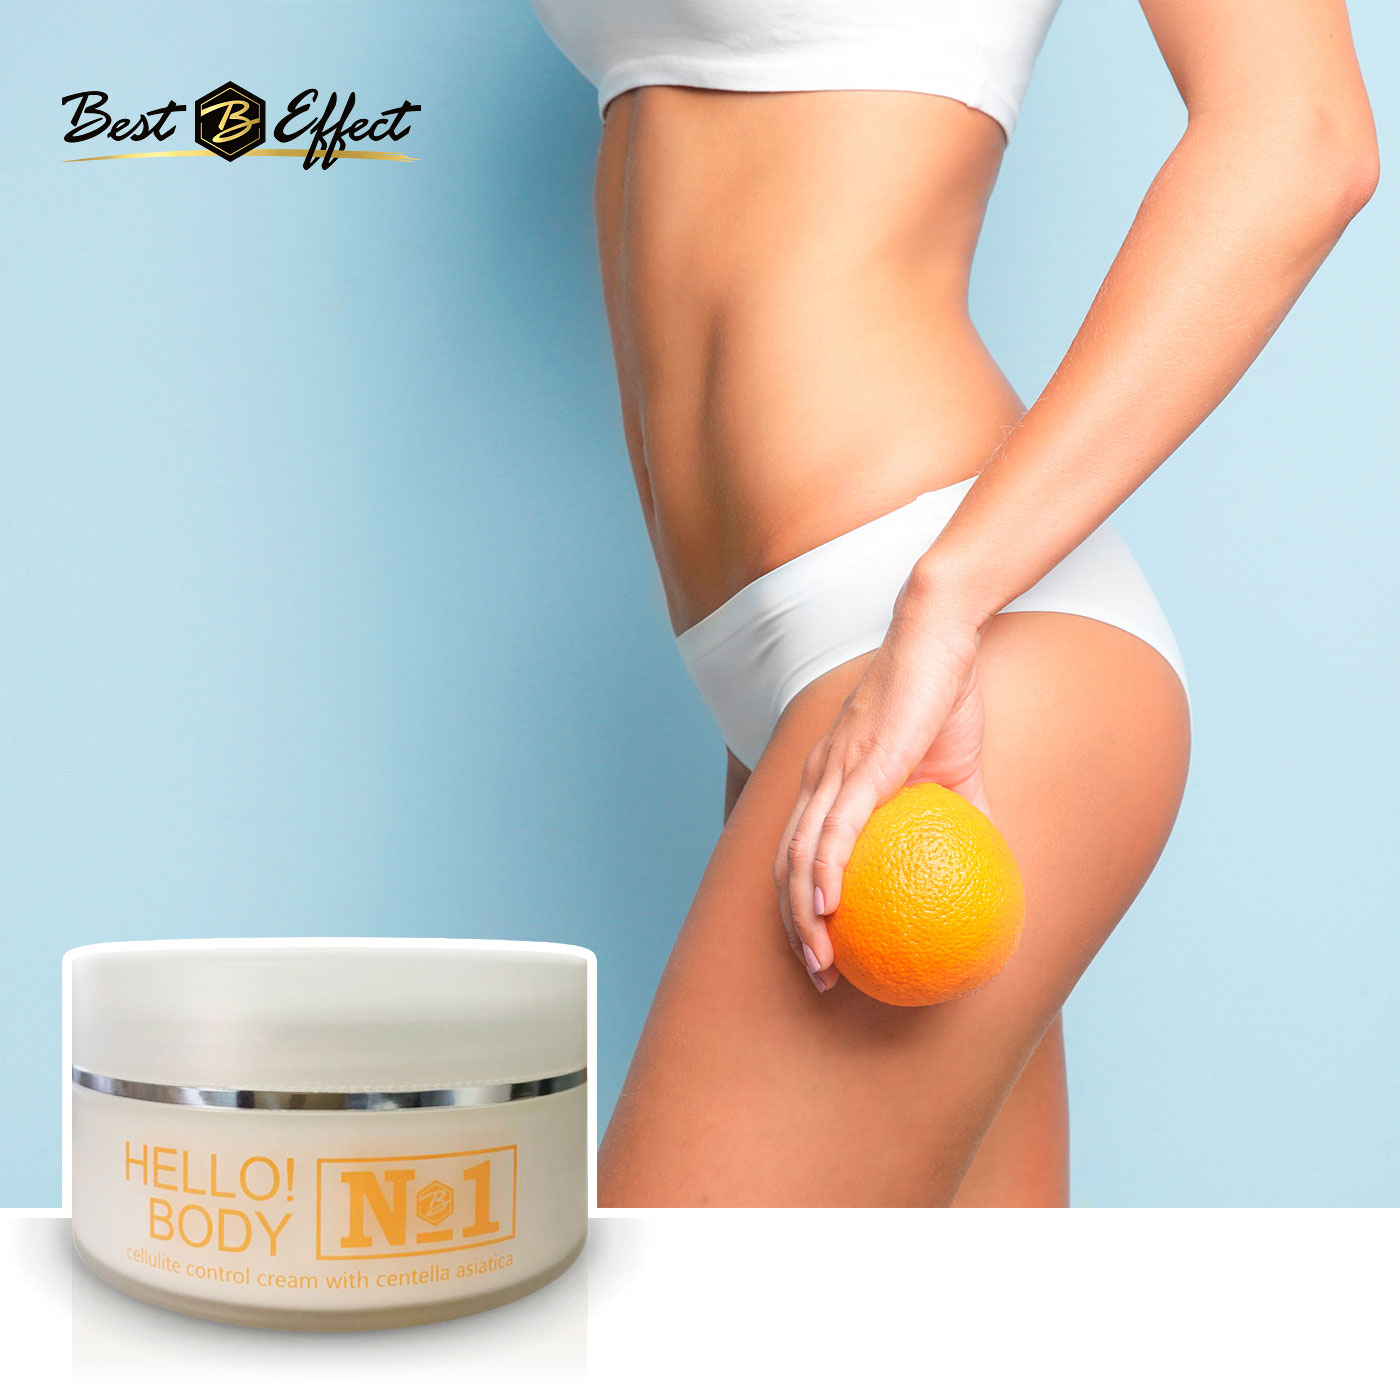 Hello!Body N1 cellulite control cream